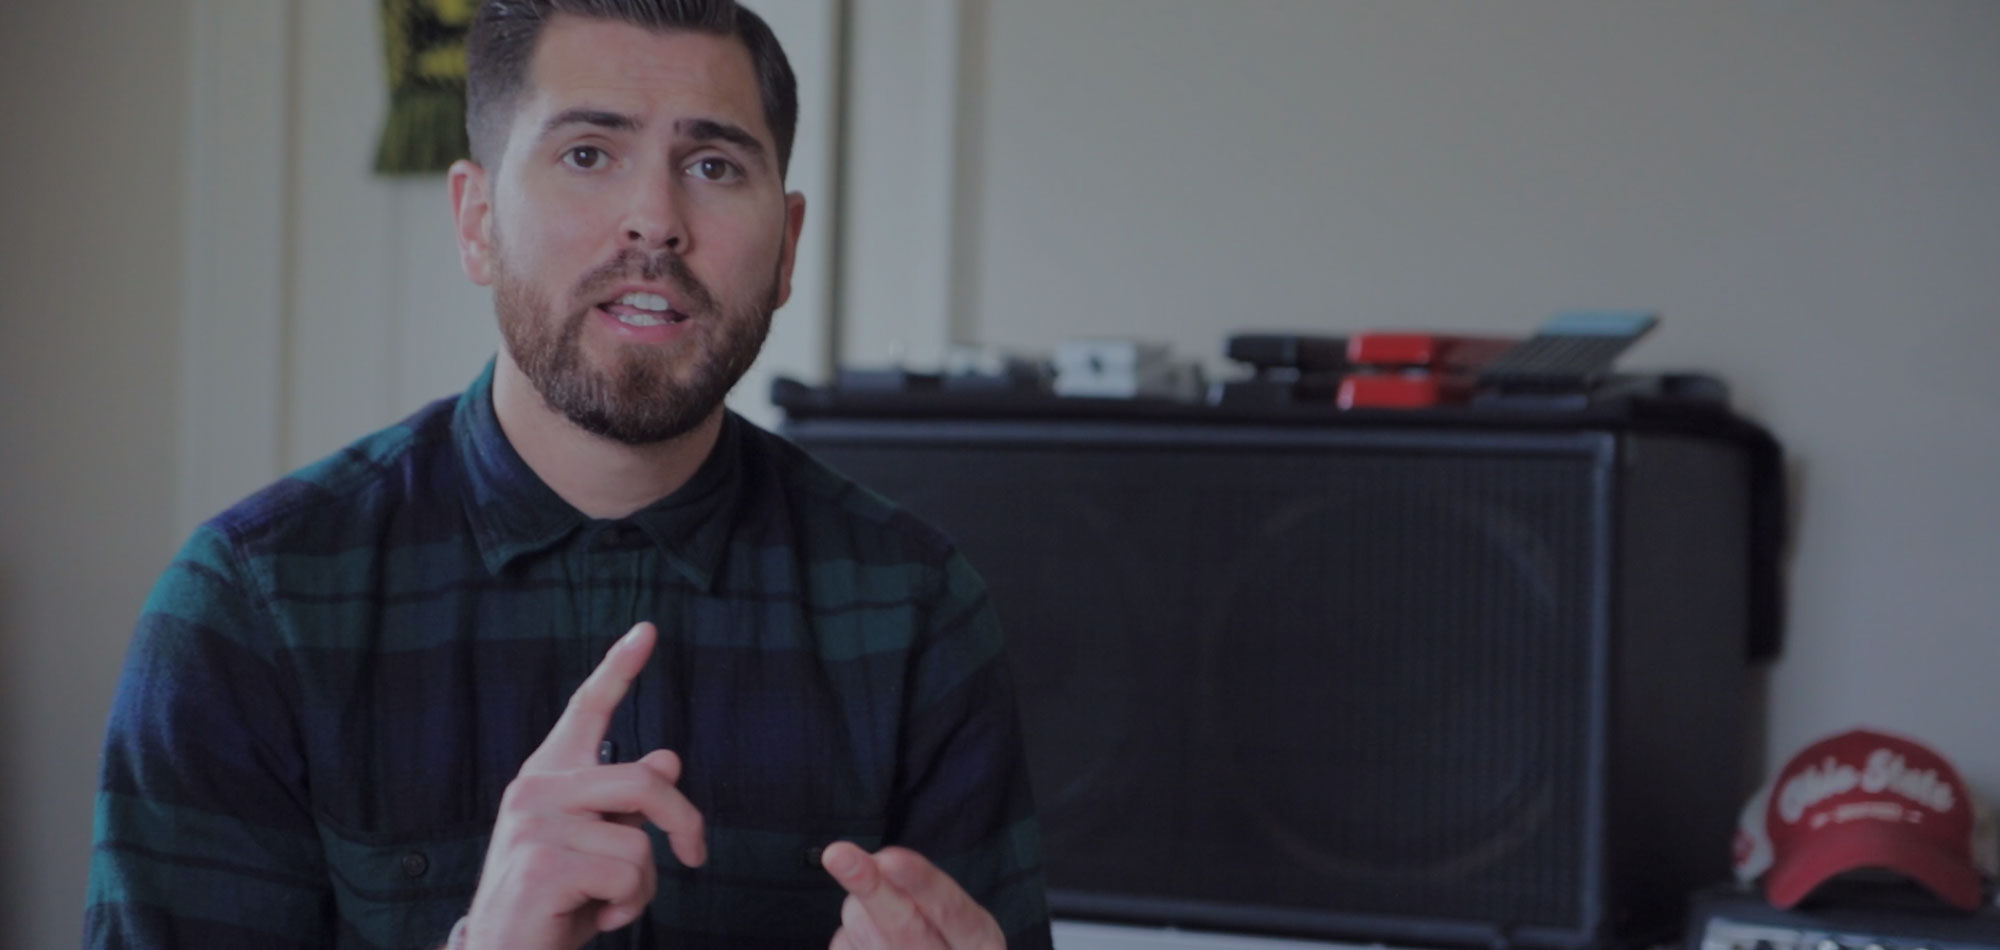 The Wi-Fi Minute: What is the Wi-Fi Engineering Process? [Video]